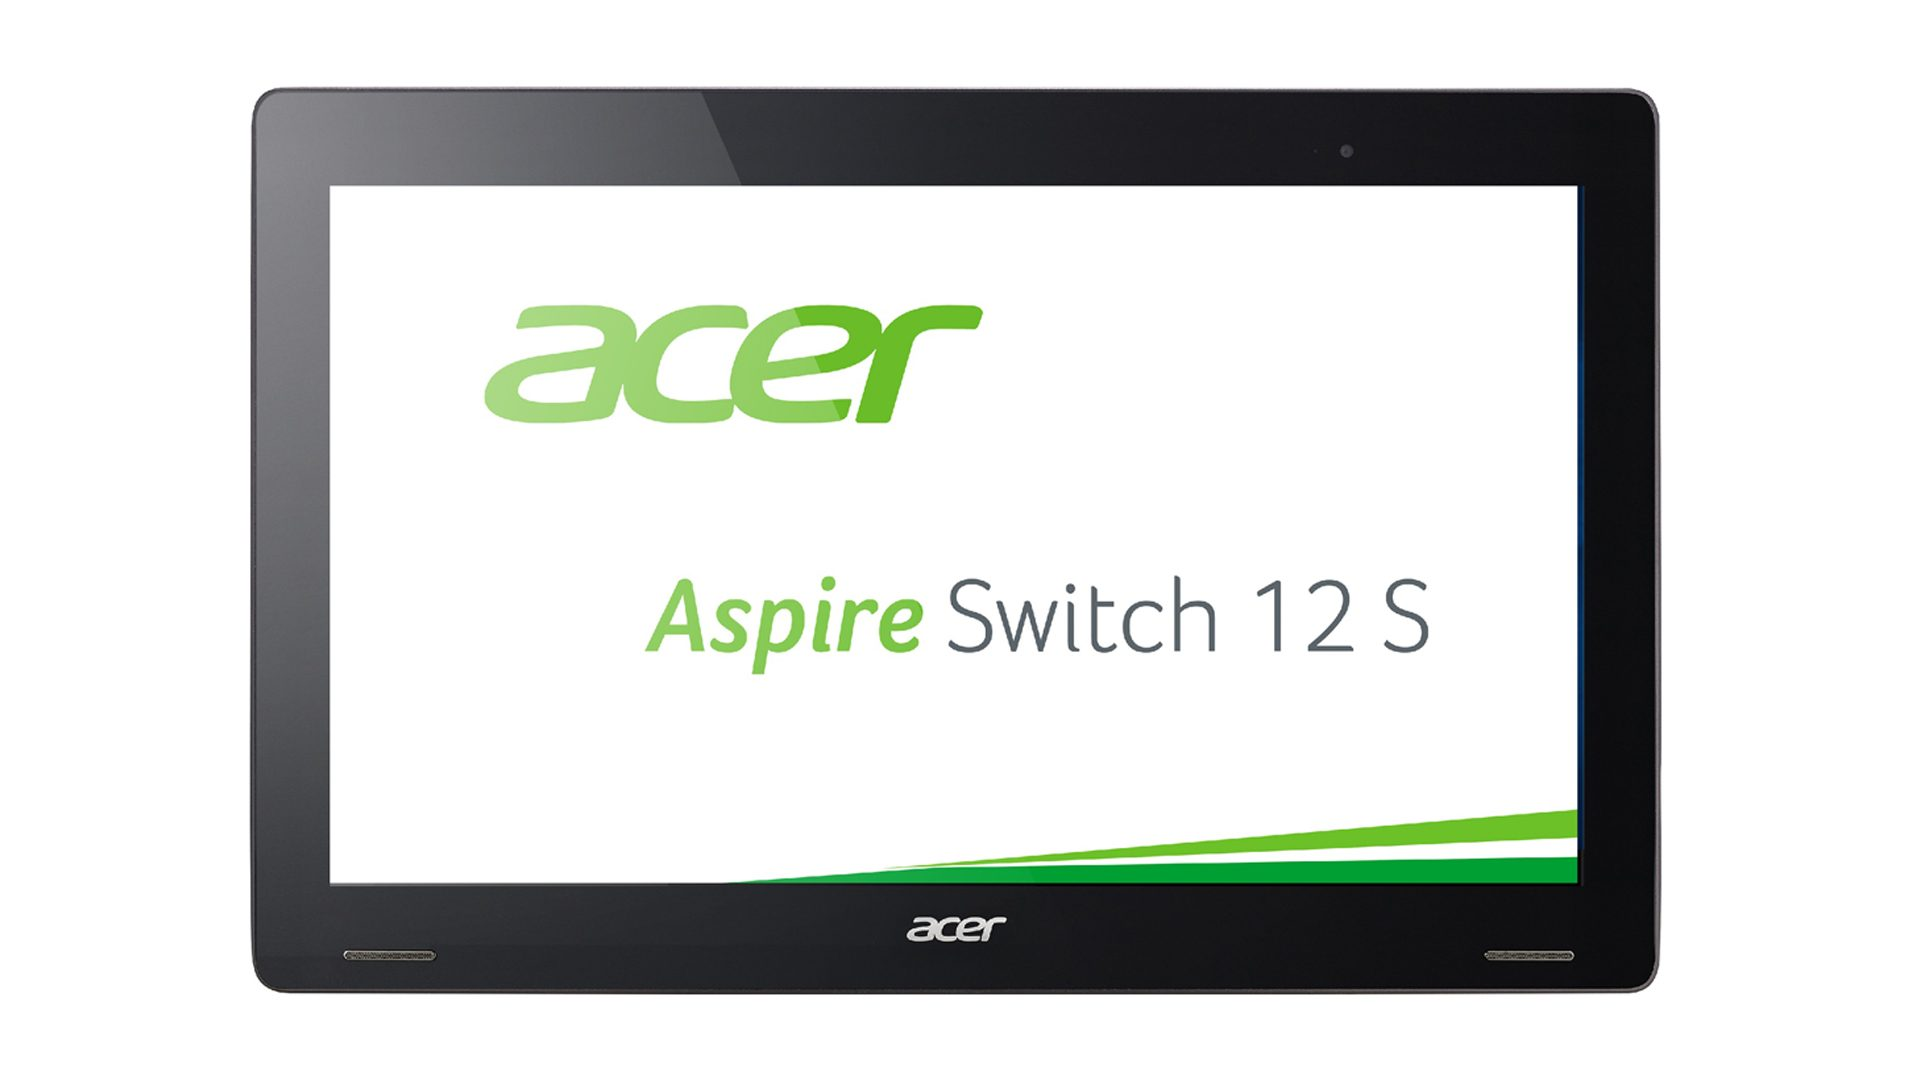 Aspire-Switch-12-S—Ansichten_03